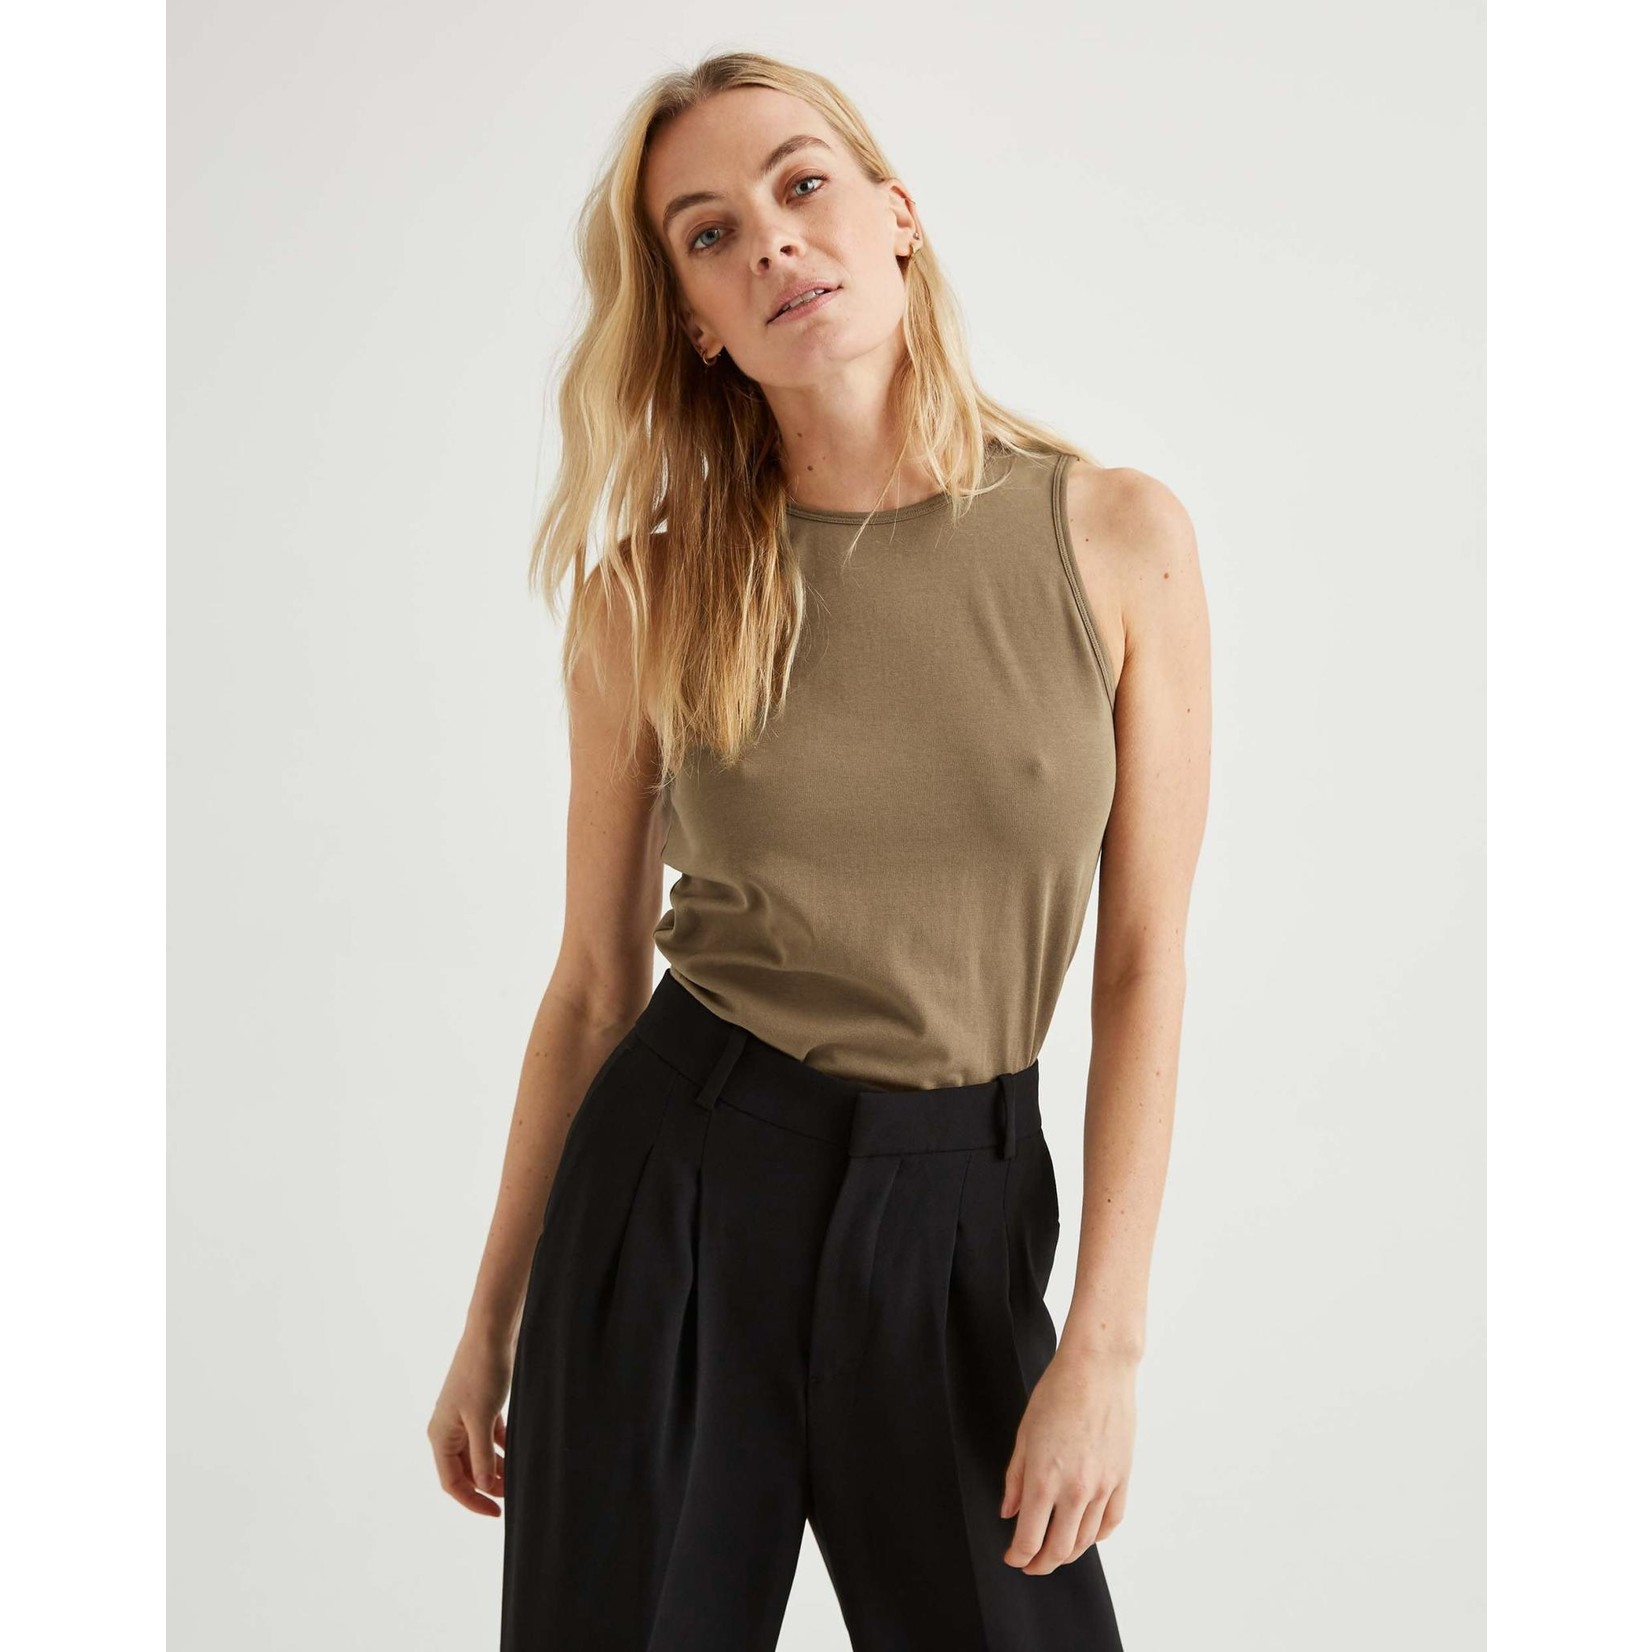 Richer Poorer Backless camisole cub S